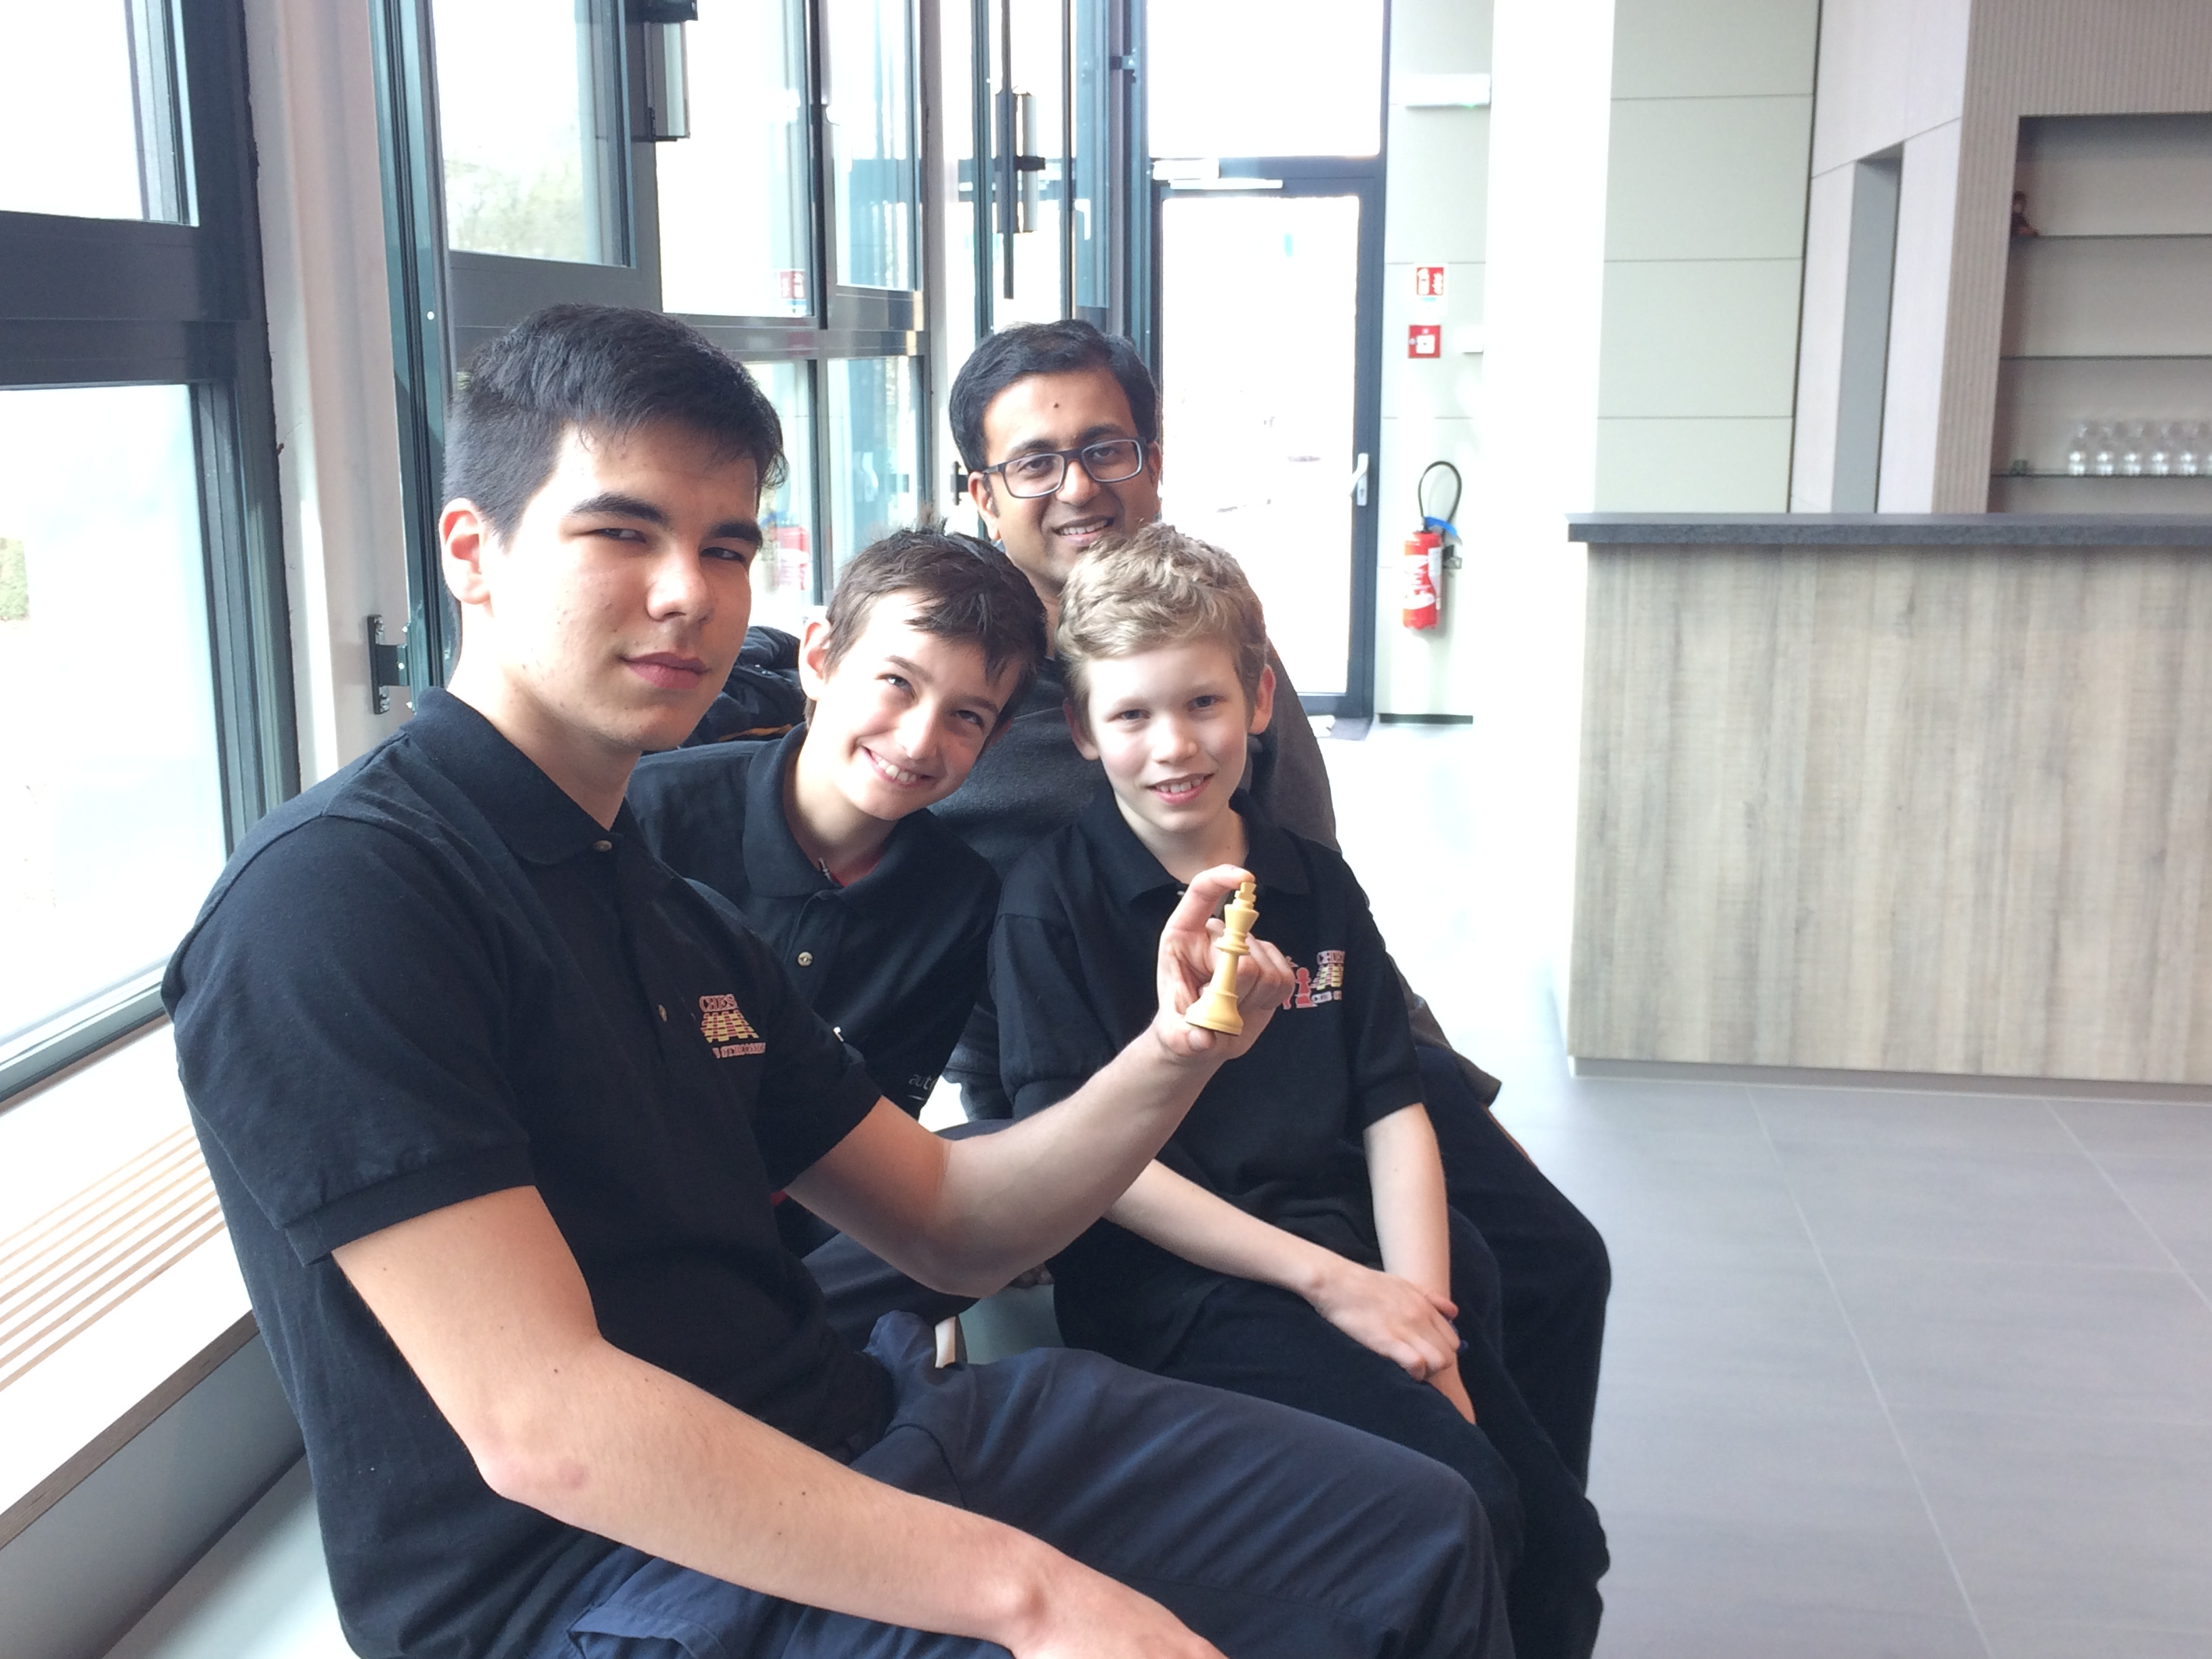 Chess: Interclubs: 7th straight win for Strassen !